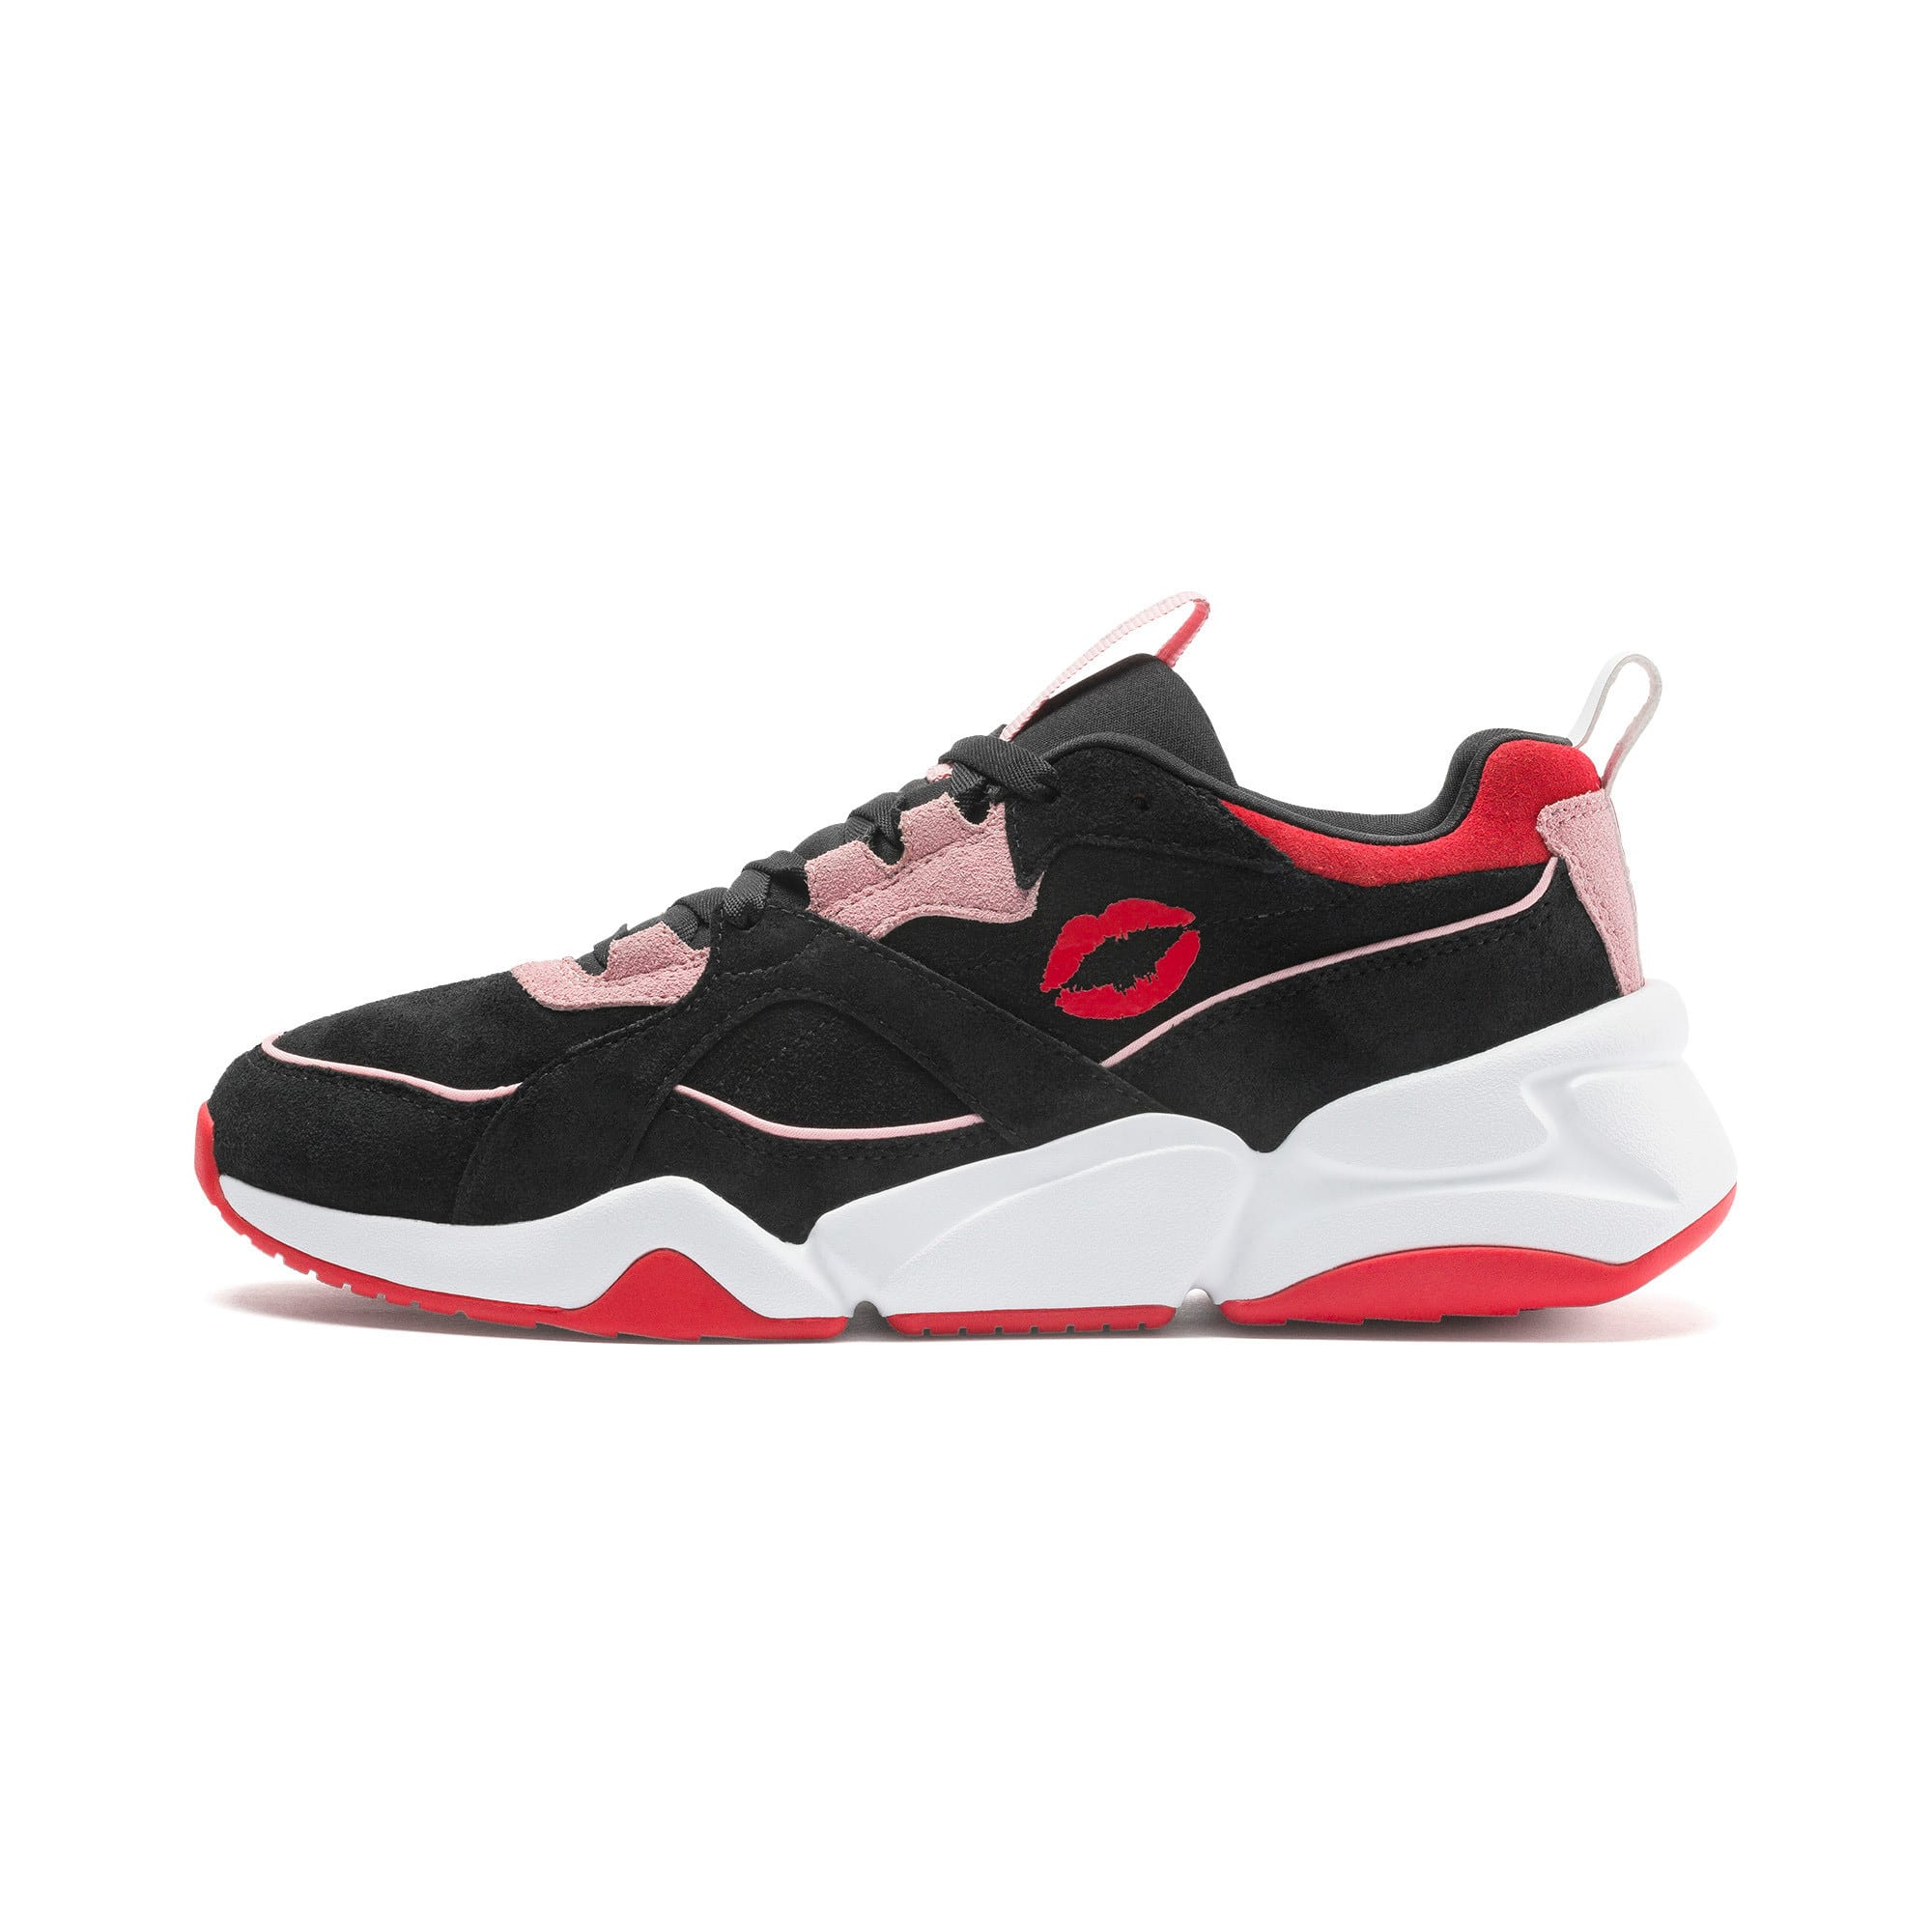 Thumbnail 1 of PUMA x MAYBELLINE Nova Women's Trainers, Puma Black-Candy Pink, medium